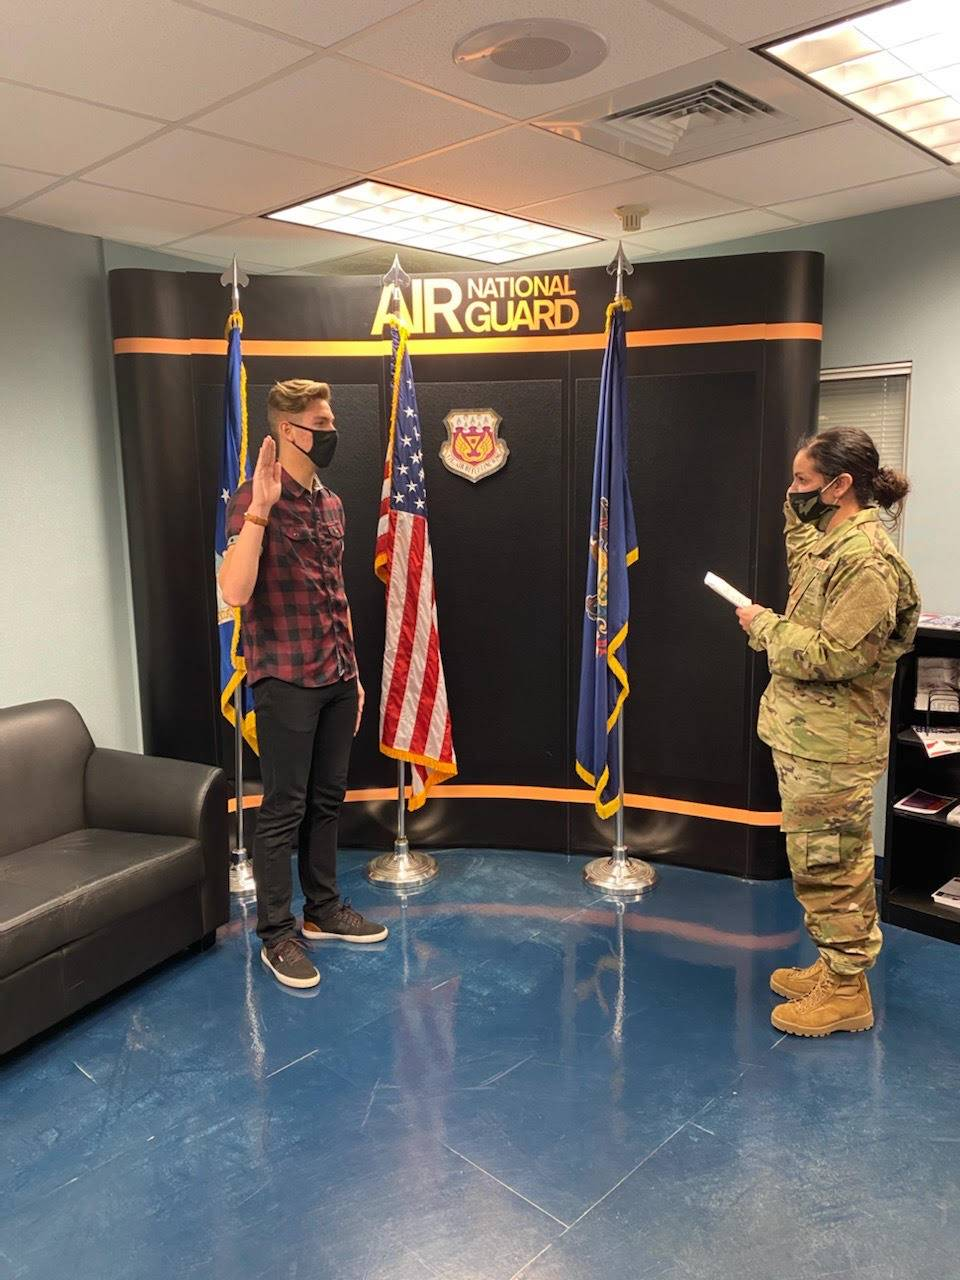 Spencer Hagen swearing in to PA National Guard